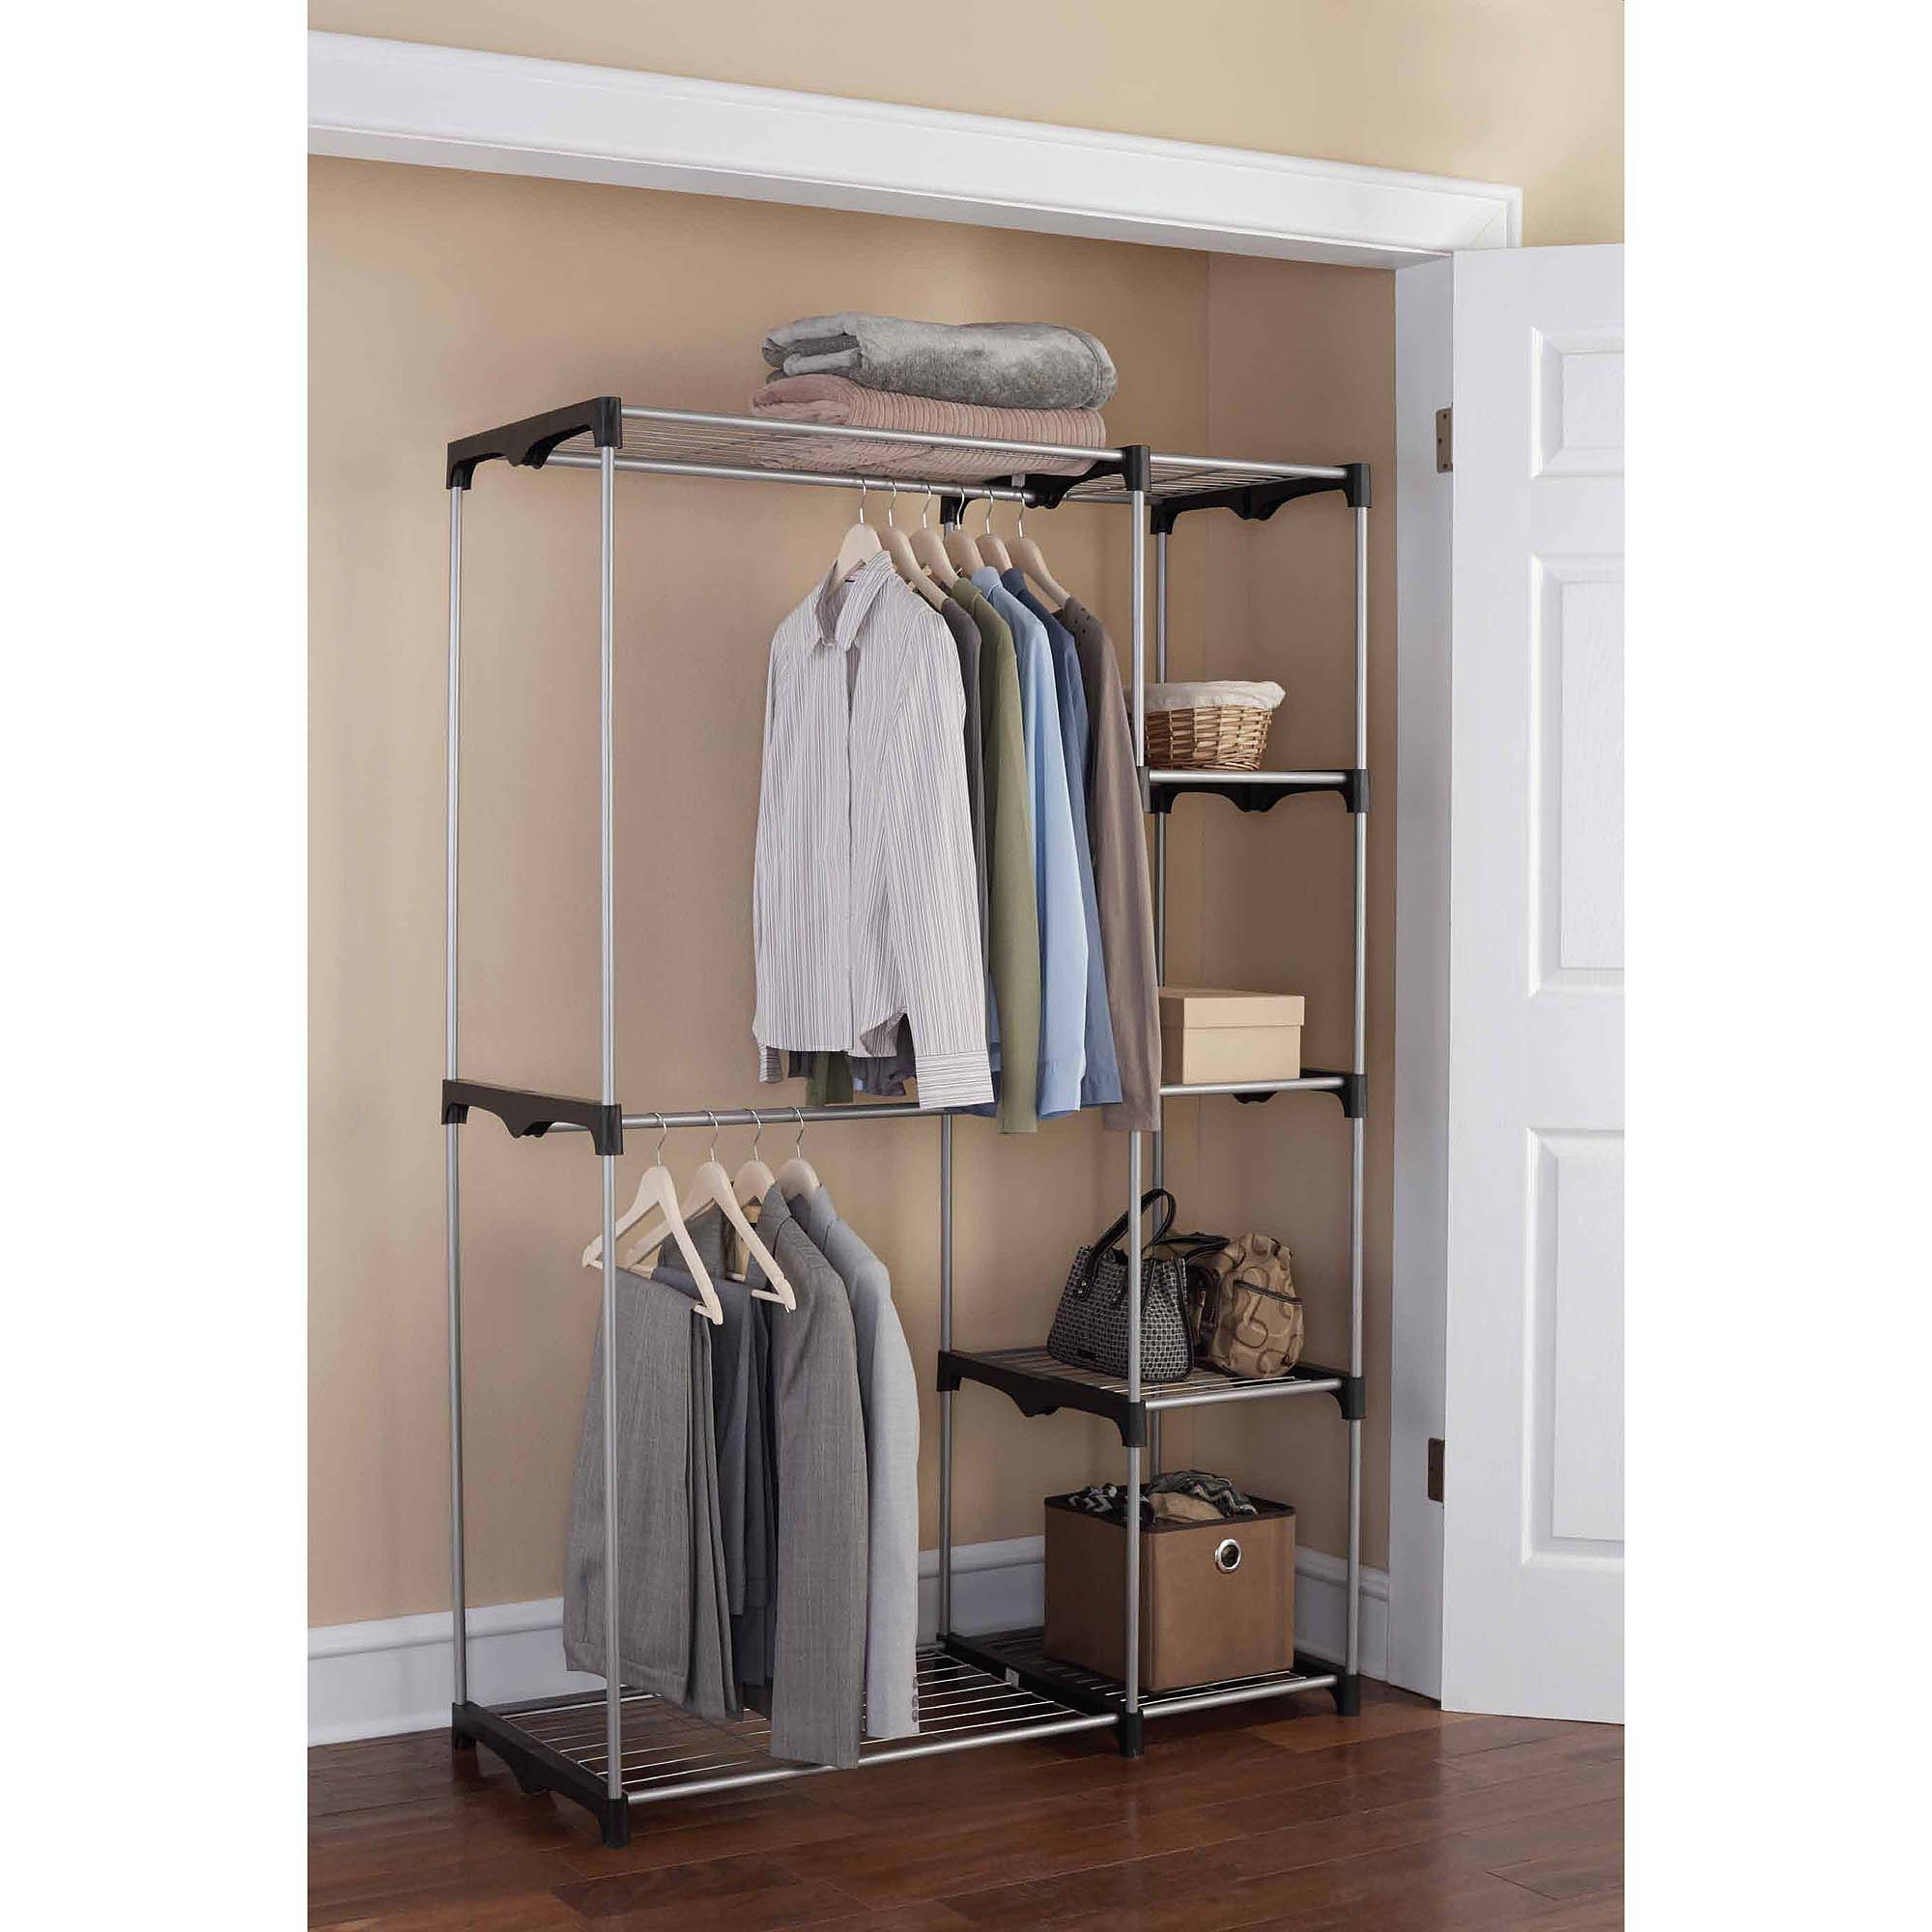 Free Standing Closet Wardrobe | Clothing Storage Armoire | Sliding Door Armoire